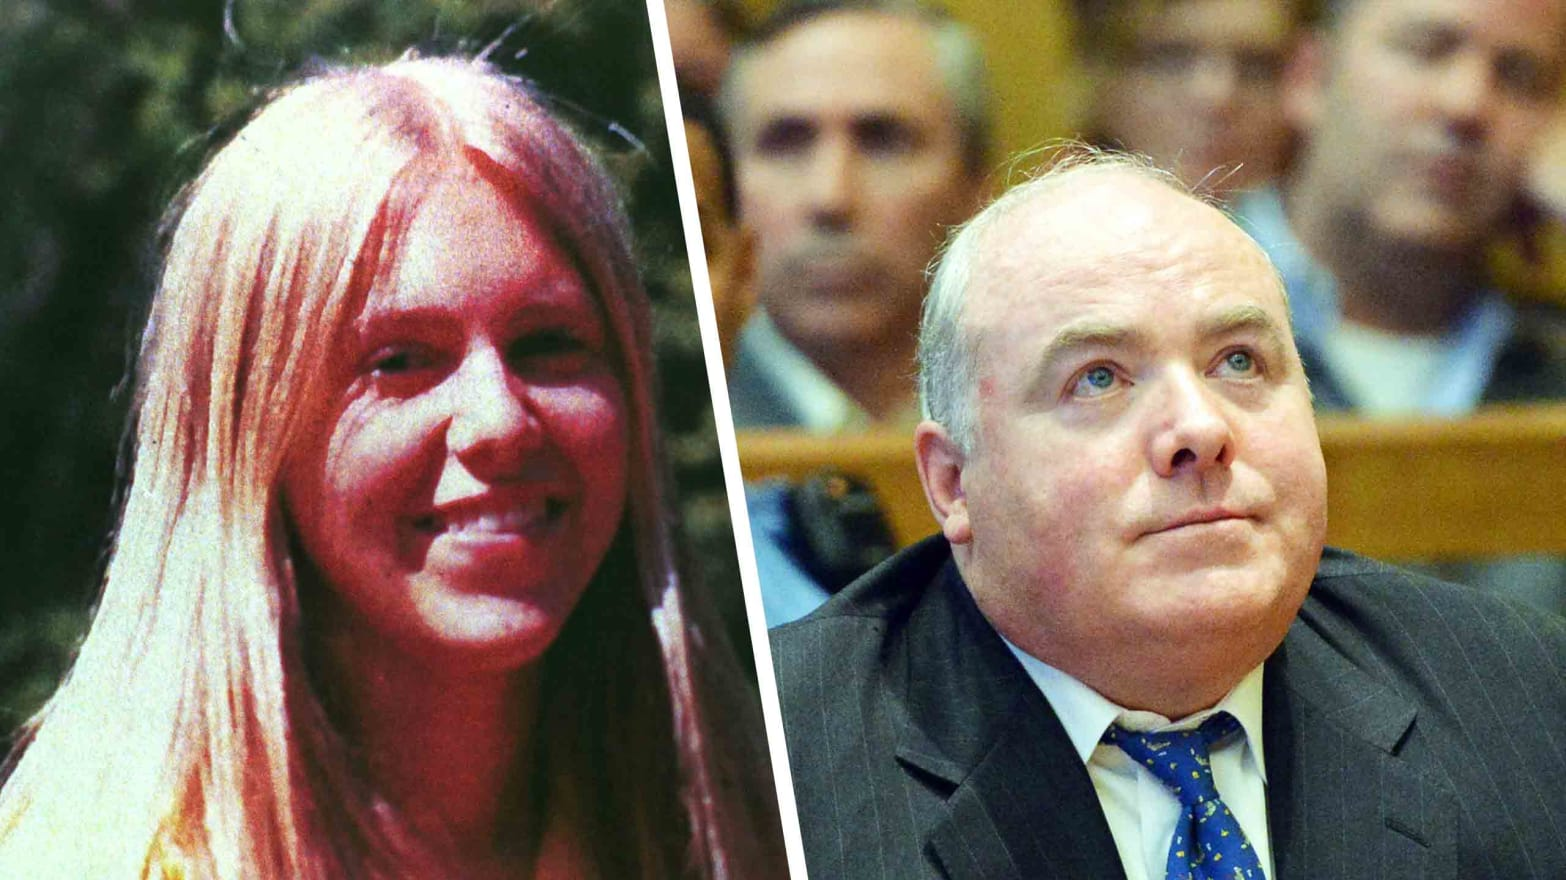 Michael Skakel Was Convicted Of Murdering Martha Moxley So Why Is